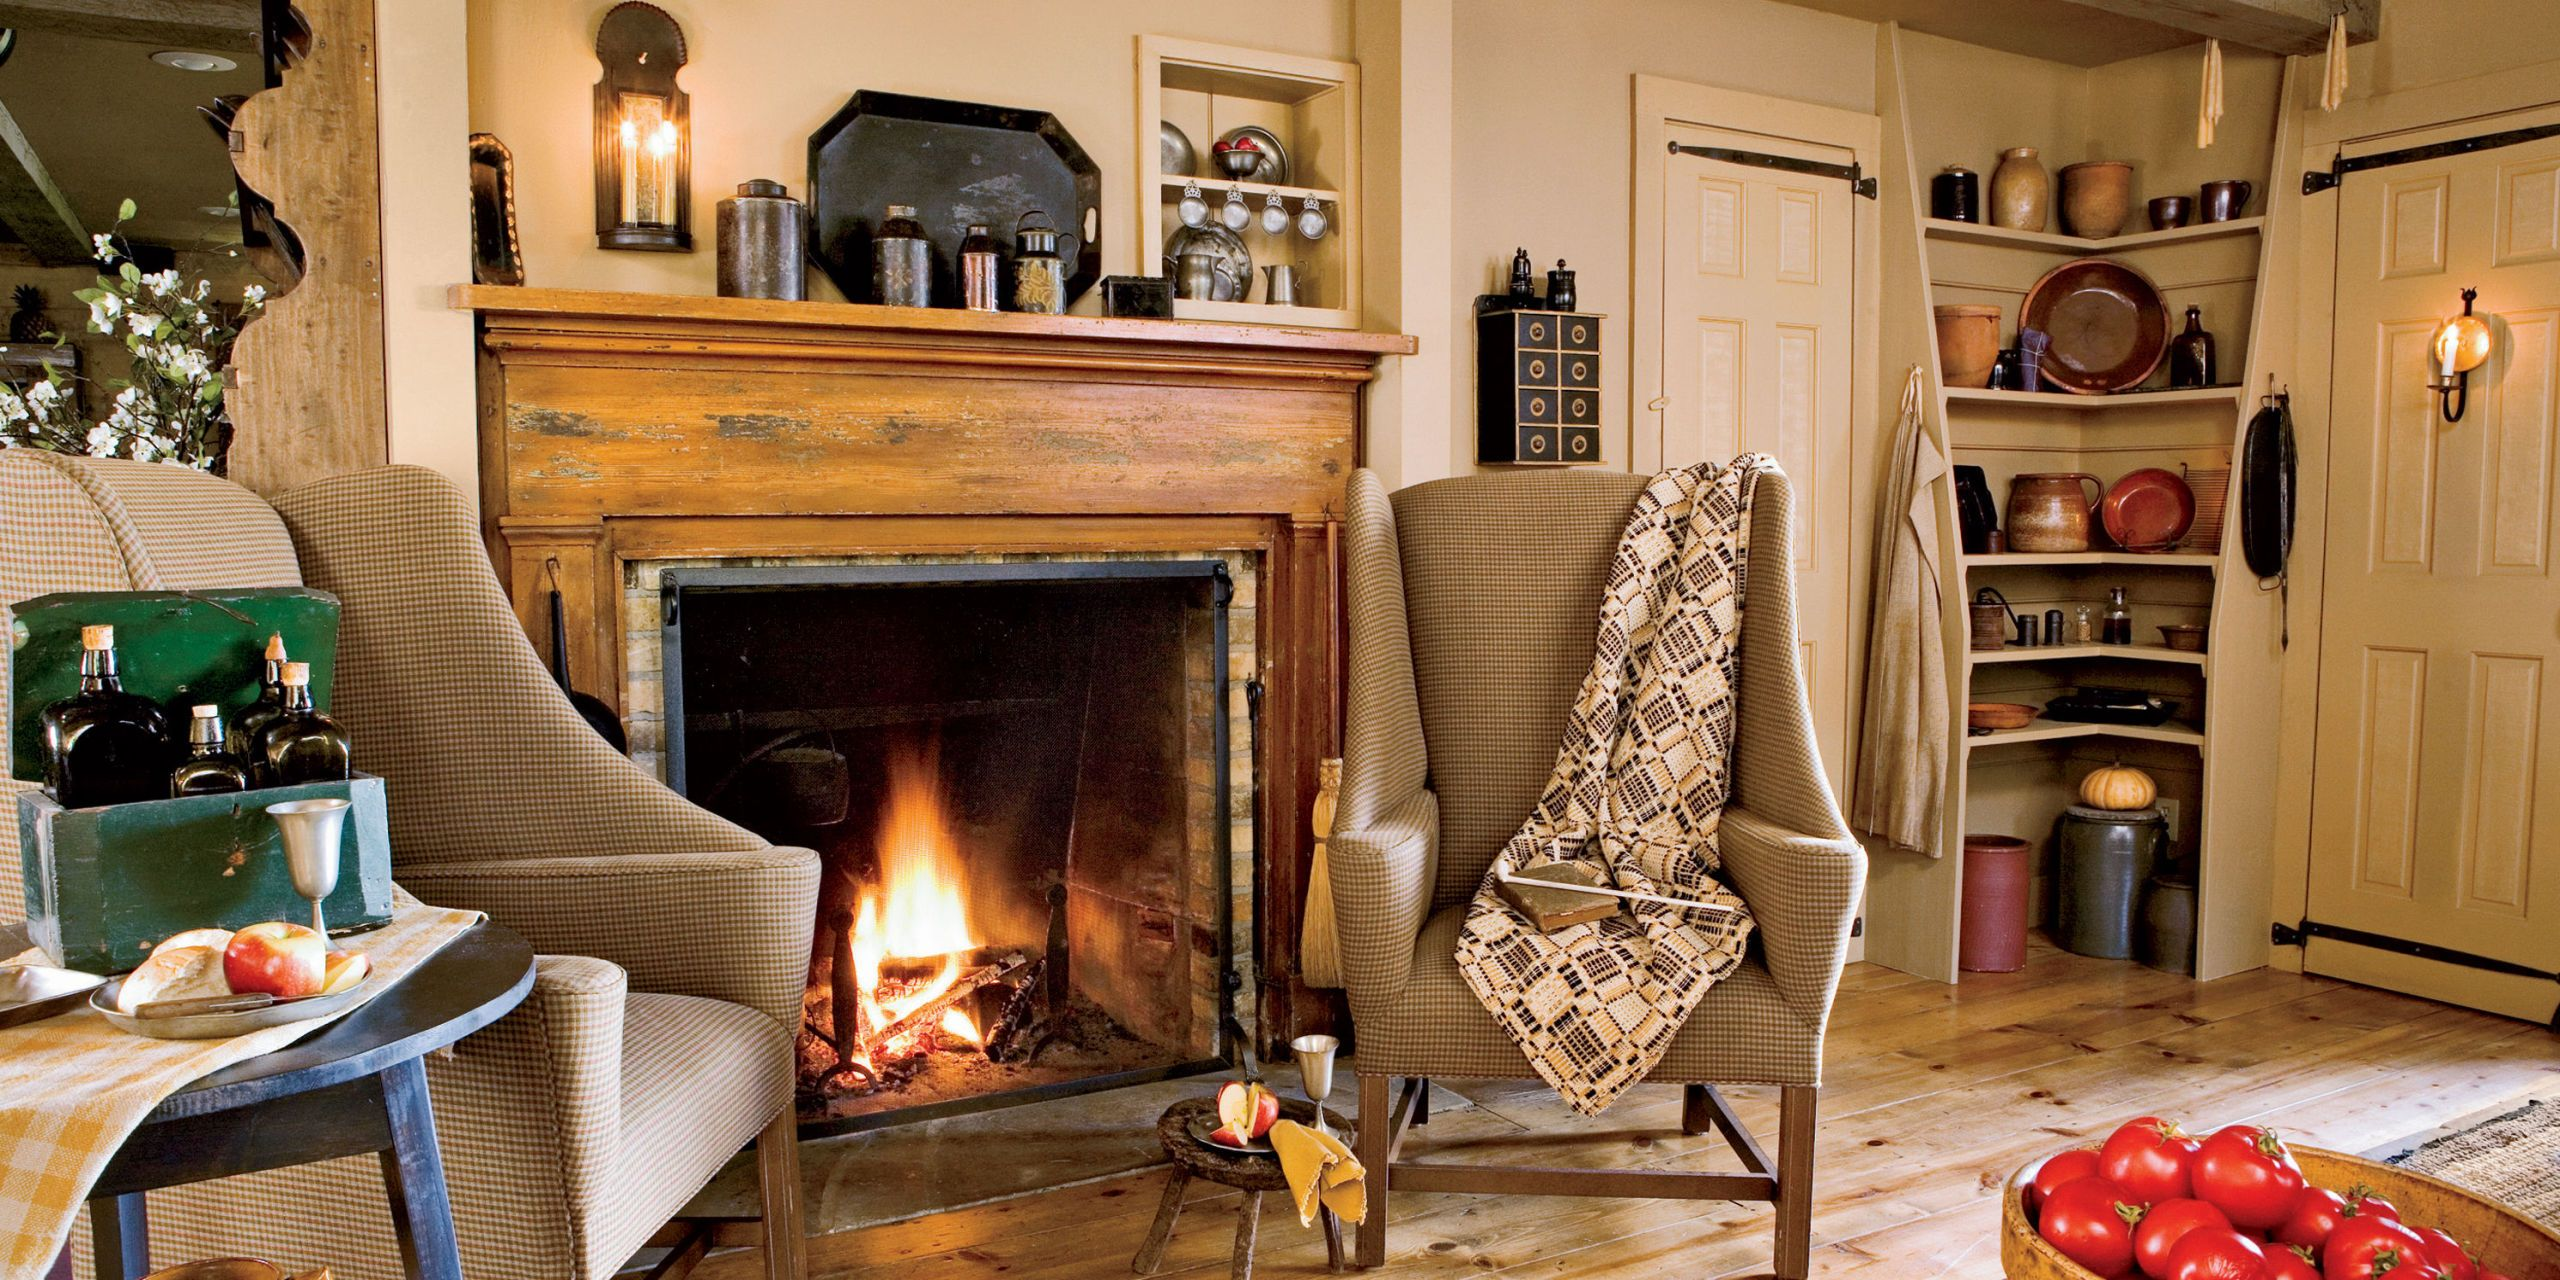 Stone, Slate, Wood, And More: Get Inspired To Re Do Your Living Room With  Our Favorite Fireplace Designs And Mantel Ideas.